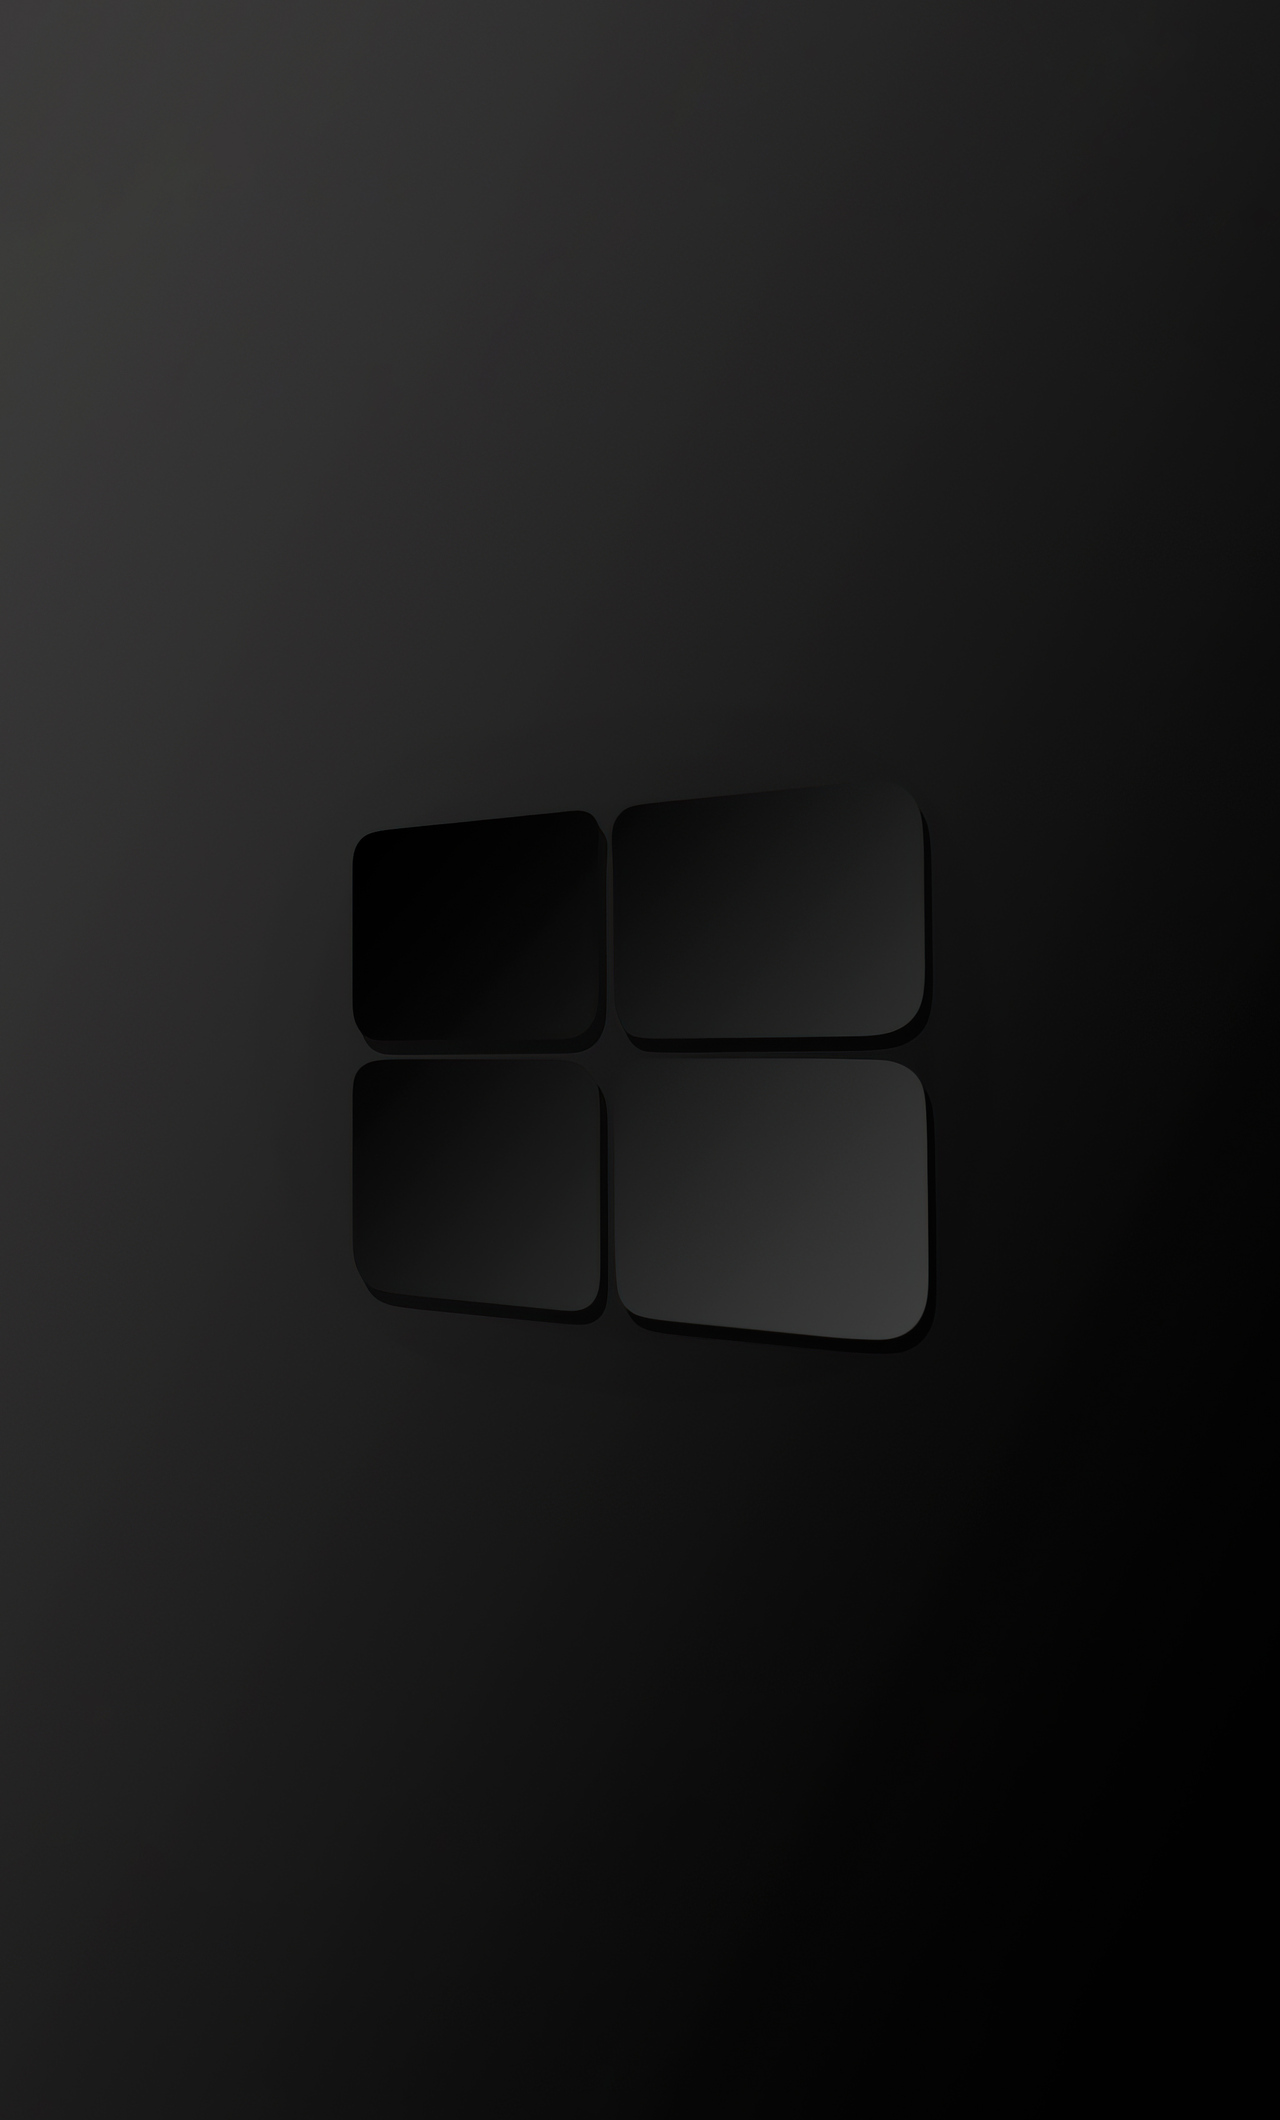 windows-10-darkness-logo-4k-24.jpg